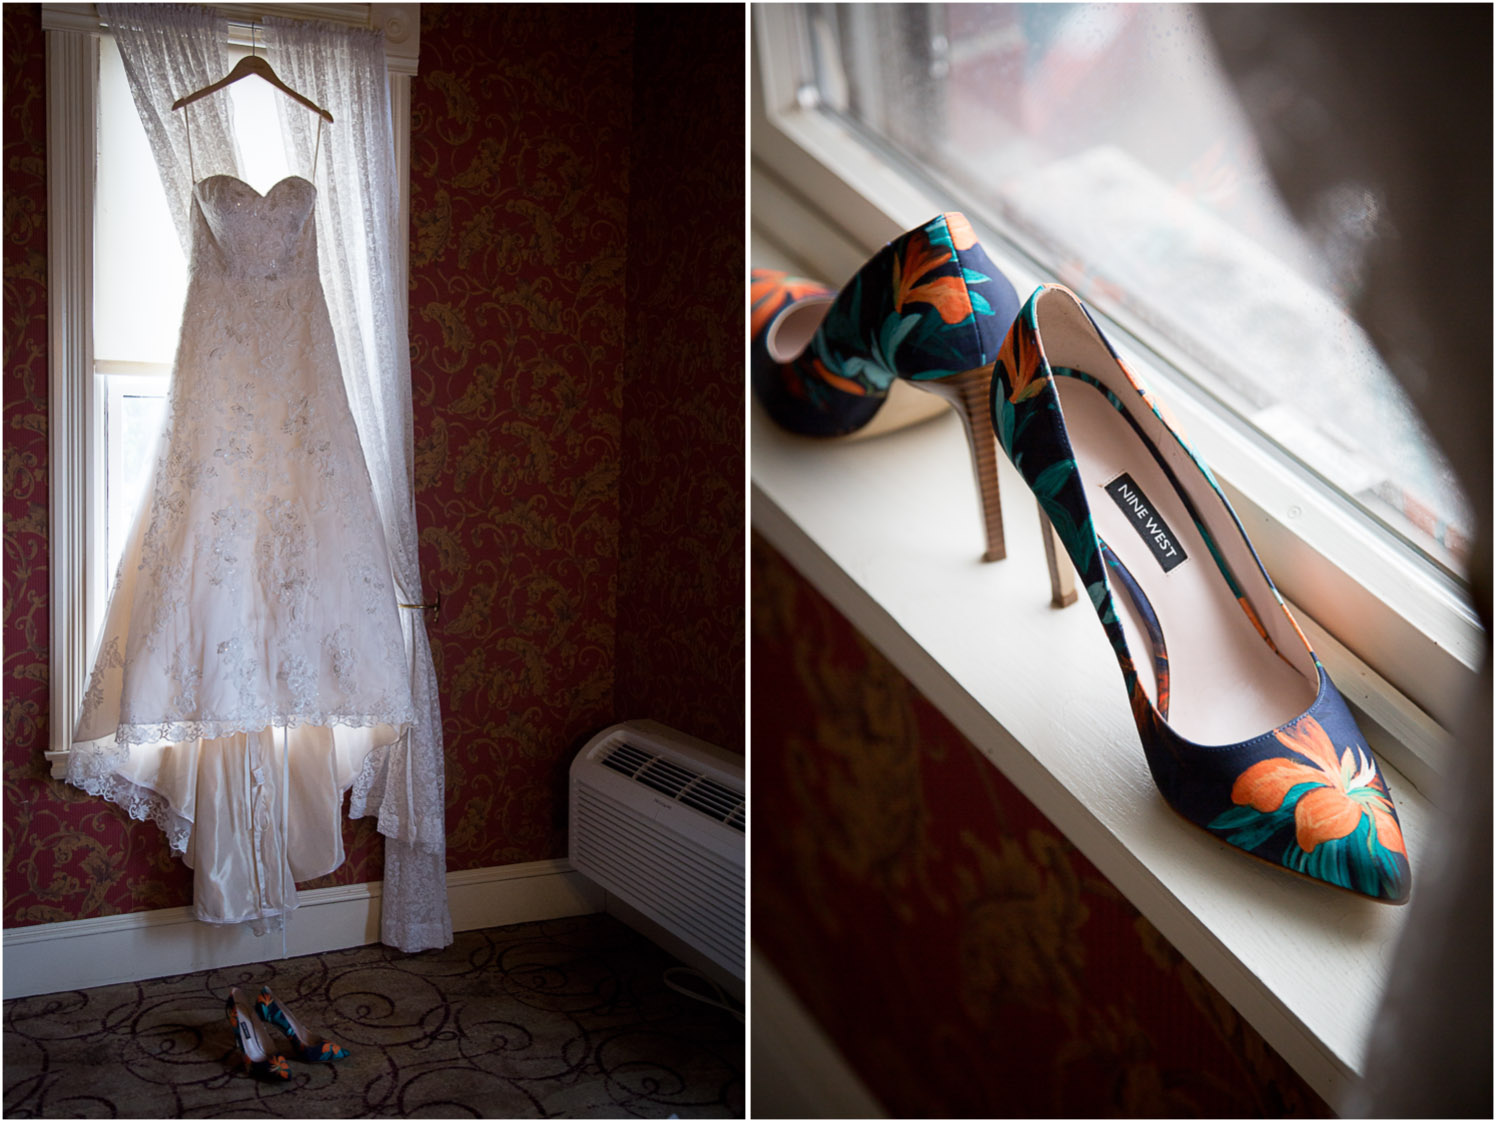 01-the-waterstreet-inn-stillwater-wedding-details-lace-gown-floral-nine-west-heels-bride-shoes-getting-ready-bridal-mn-wedding-photographer-mahonen-photography.jpg